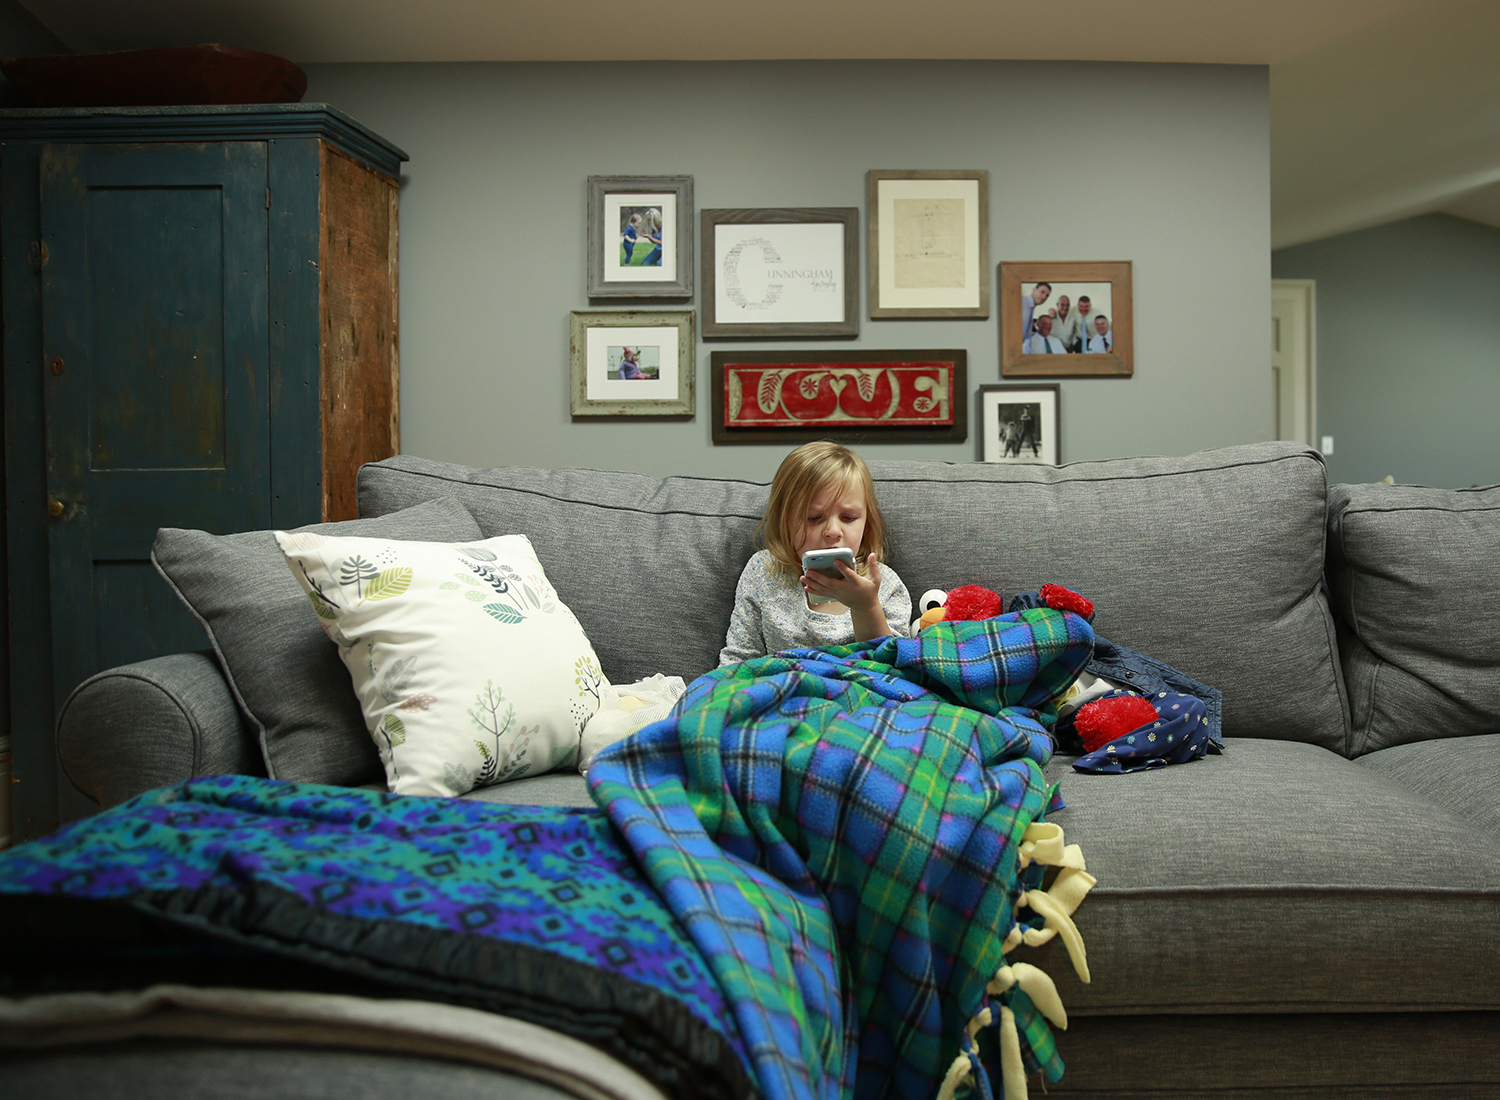 Copy of little girl playing with mom's cell phone during in-home photo session